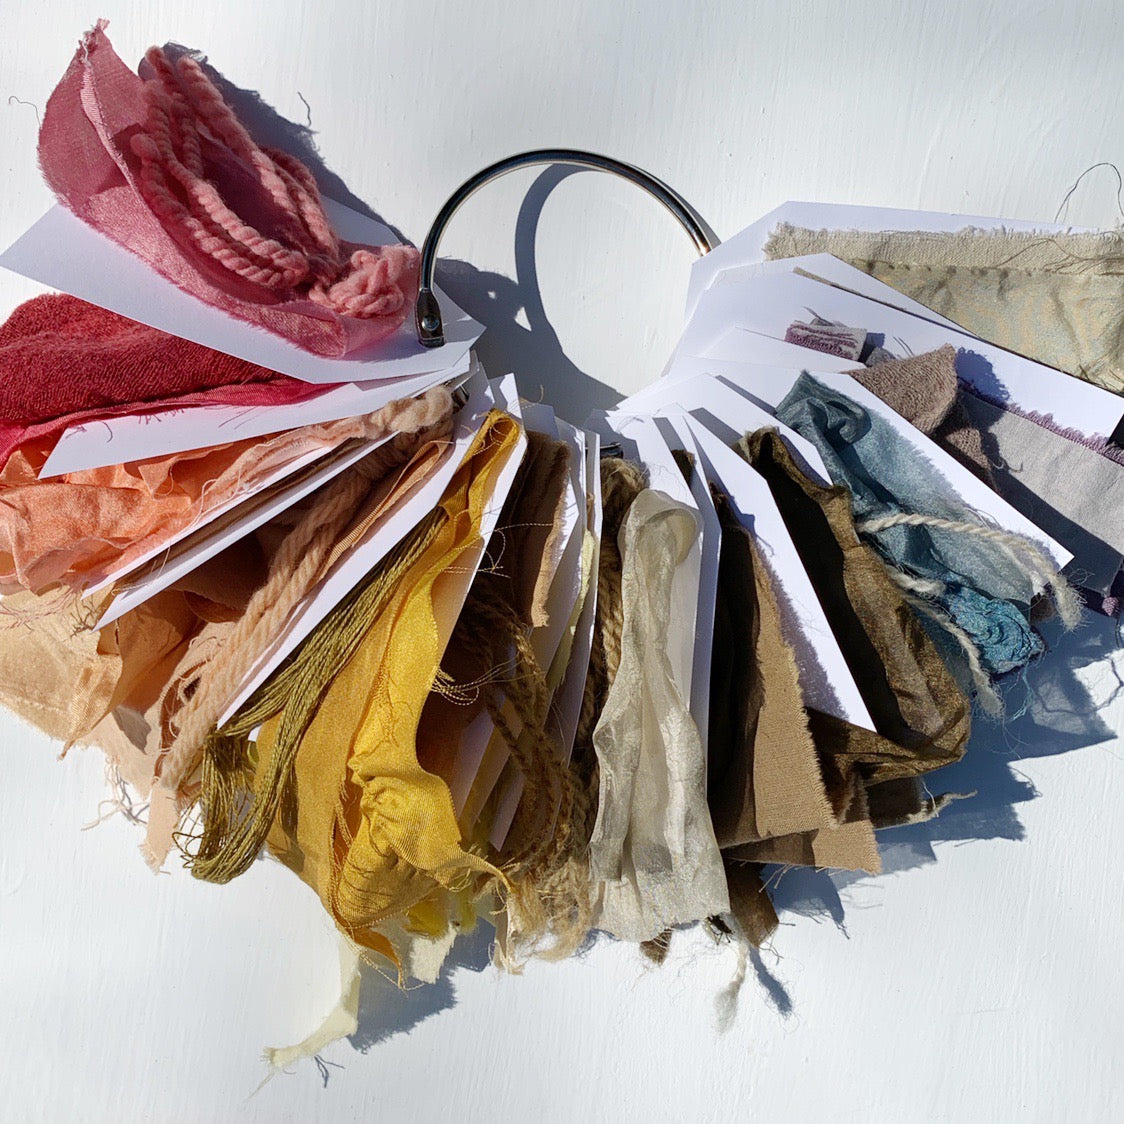 12/14 Natural Dye Workshop: Dyeing with Local Plants on Saturday December 14 at 2pm